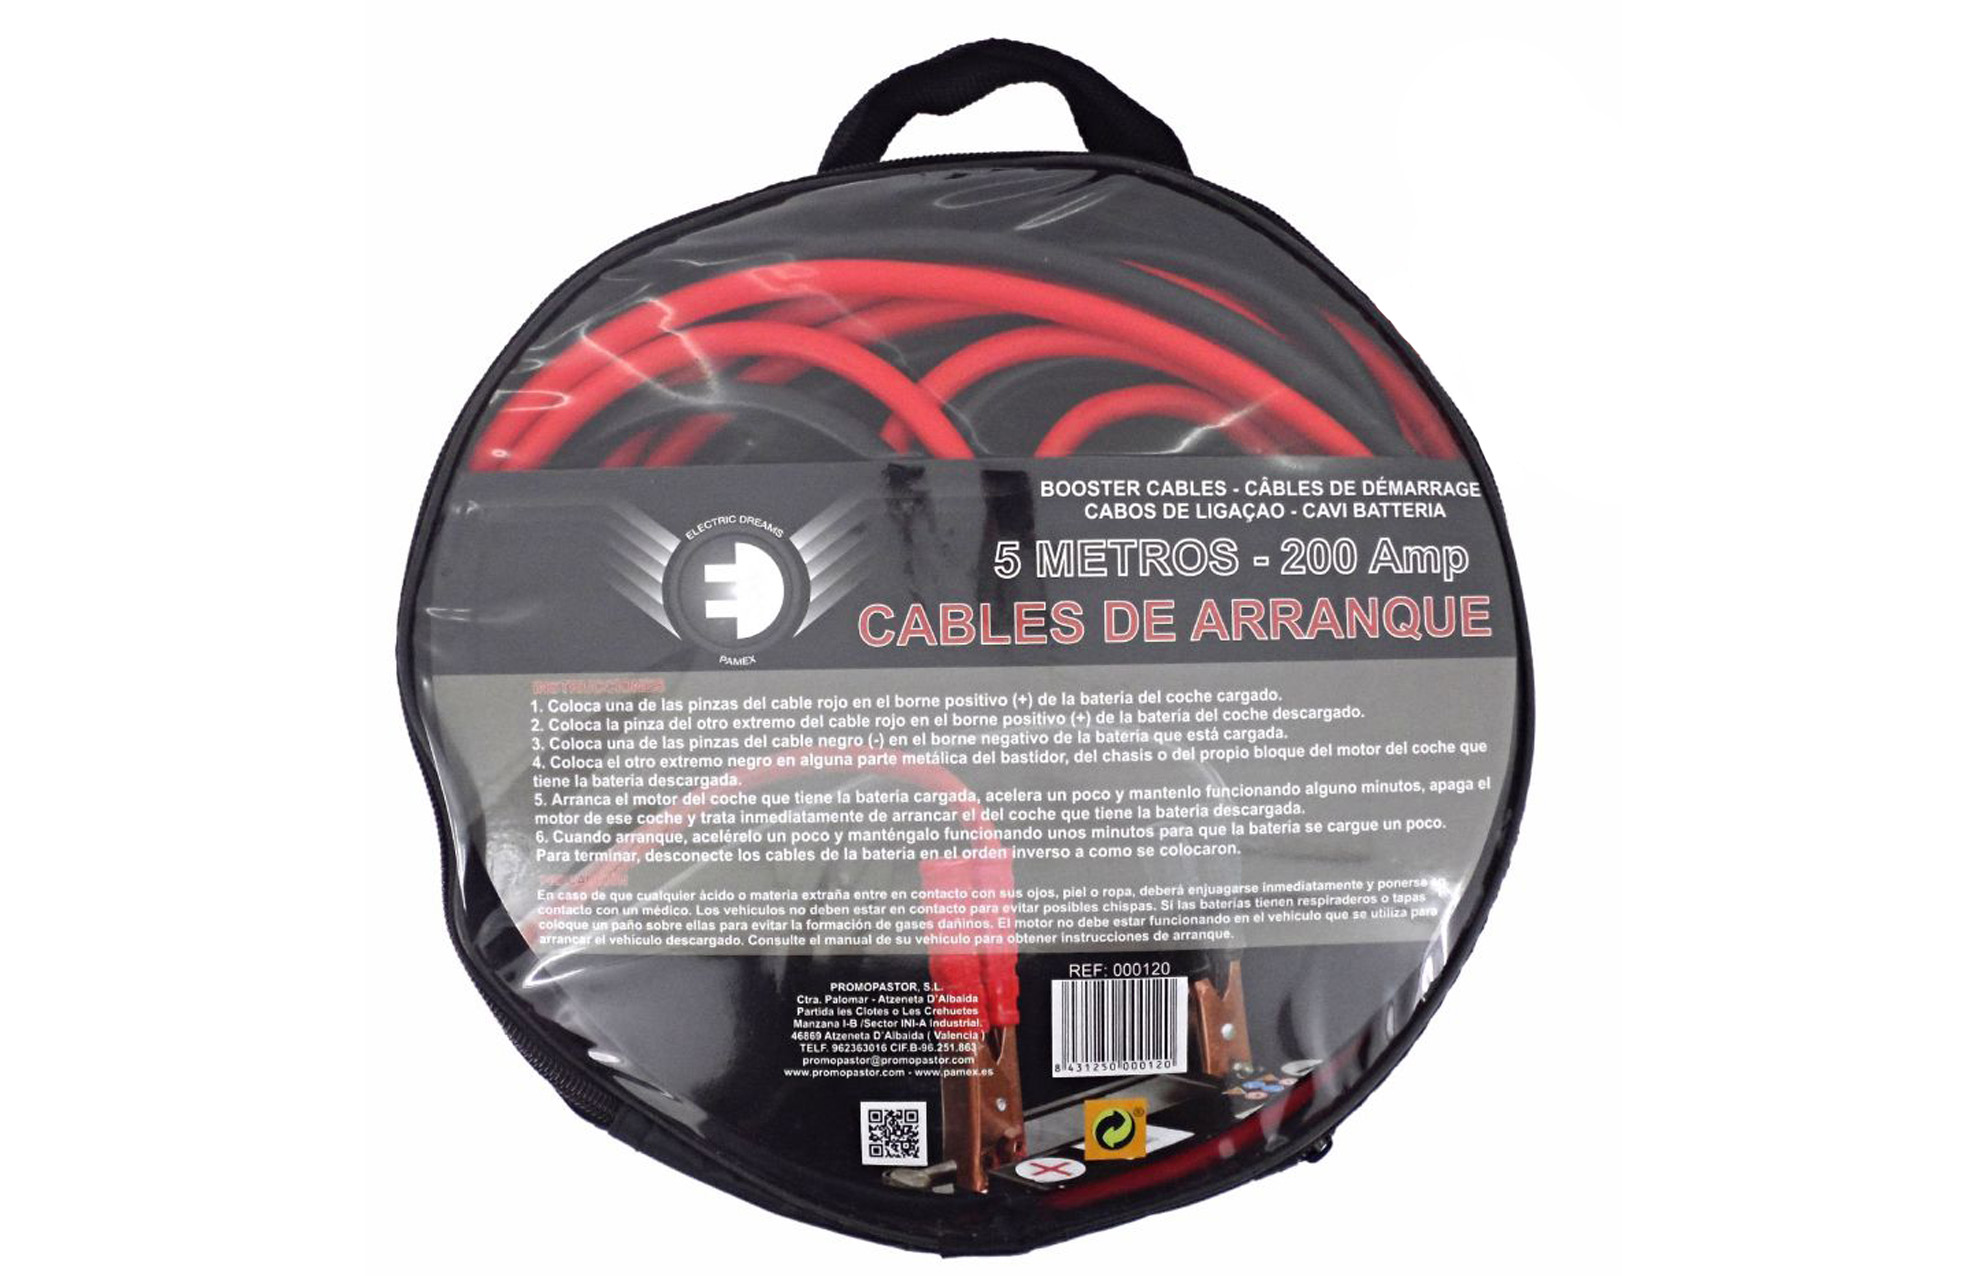 CABLES DE ARRANQUE 5 M